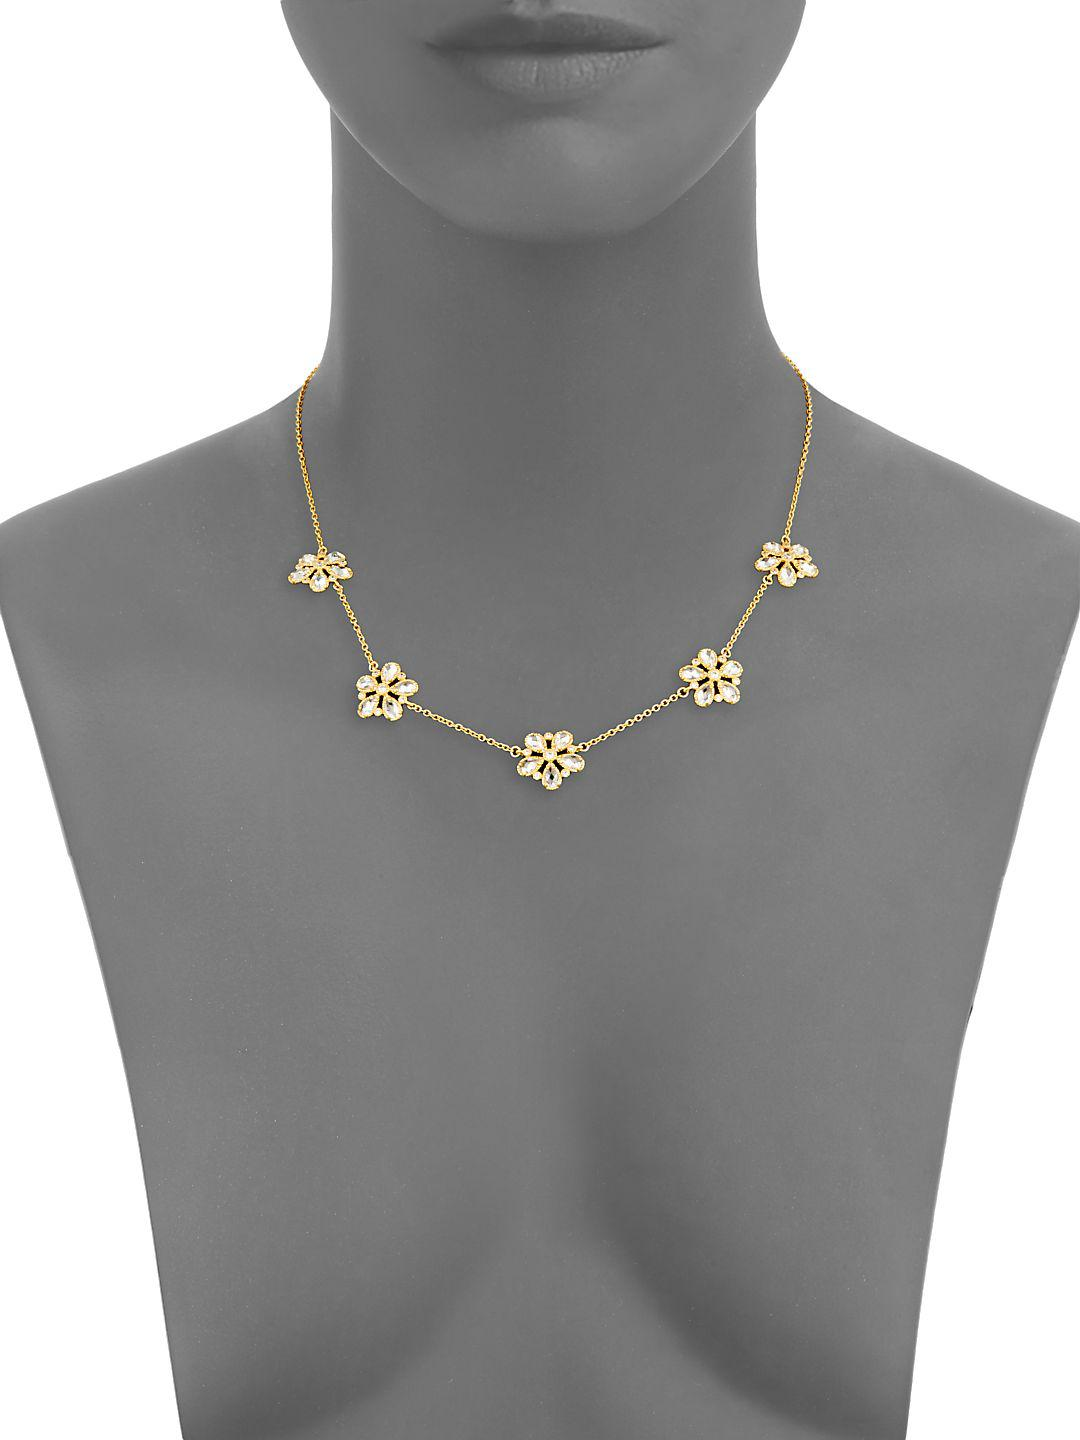 Freida Rothman Classic Cz & 14k Gold-plated Sterling Silver Floral Station Necklace in Metallic